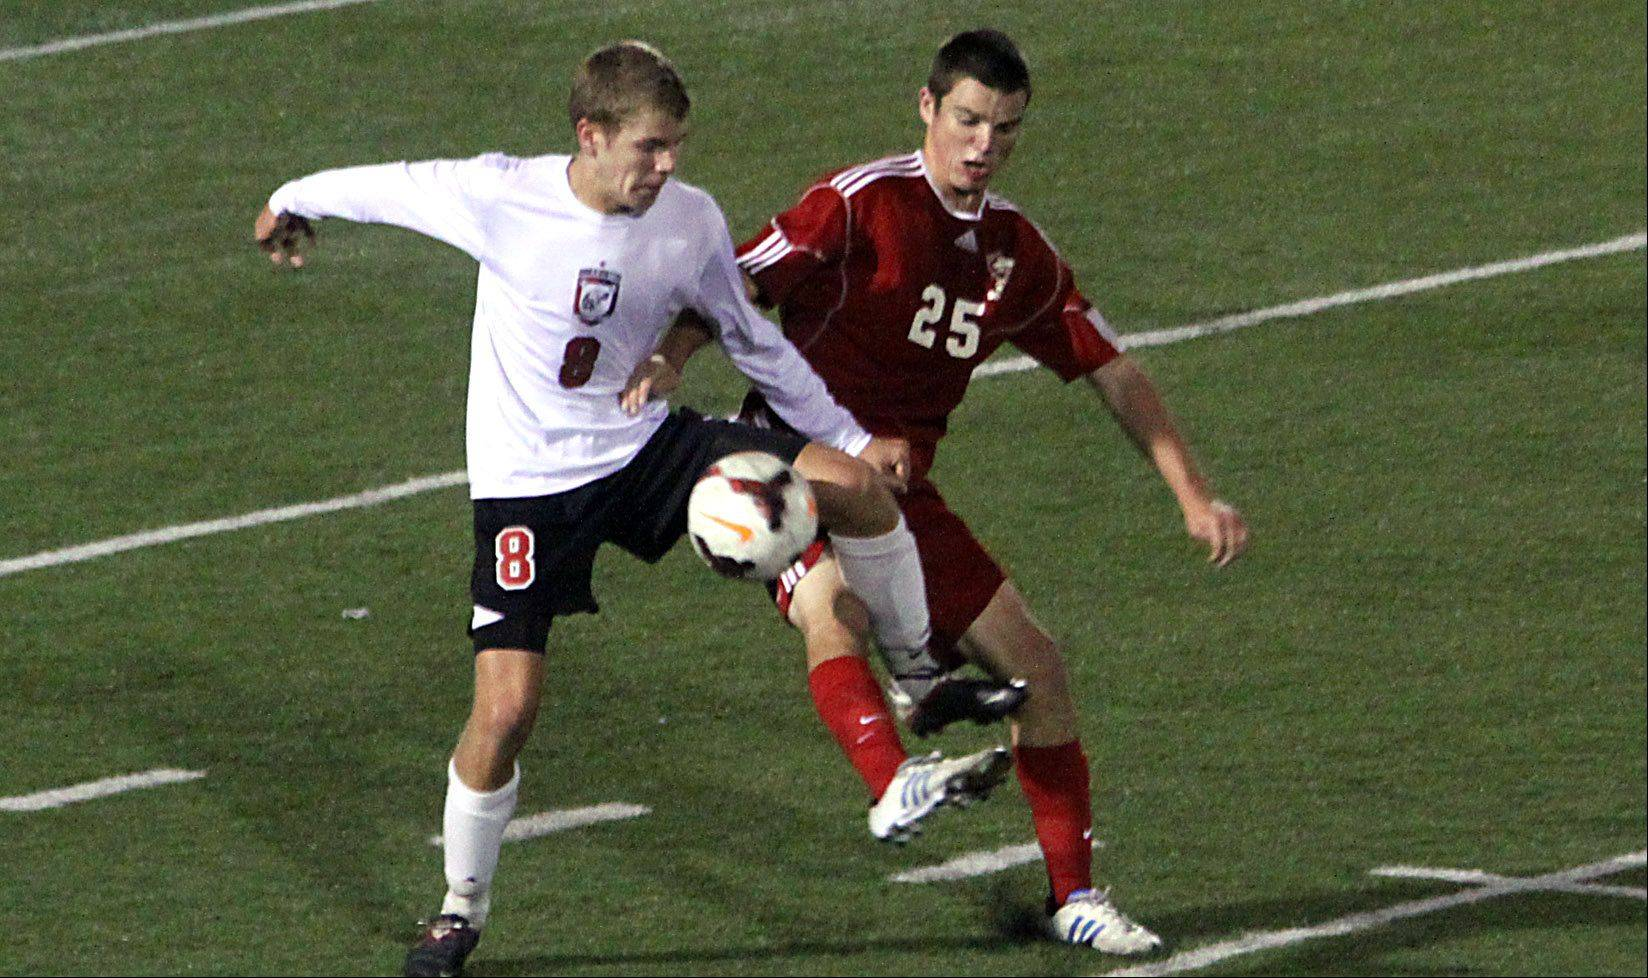 Barrington's David Conrad, left, and Palatine's Kevin Burke battle for control of the ball on Monday night at Barrington.